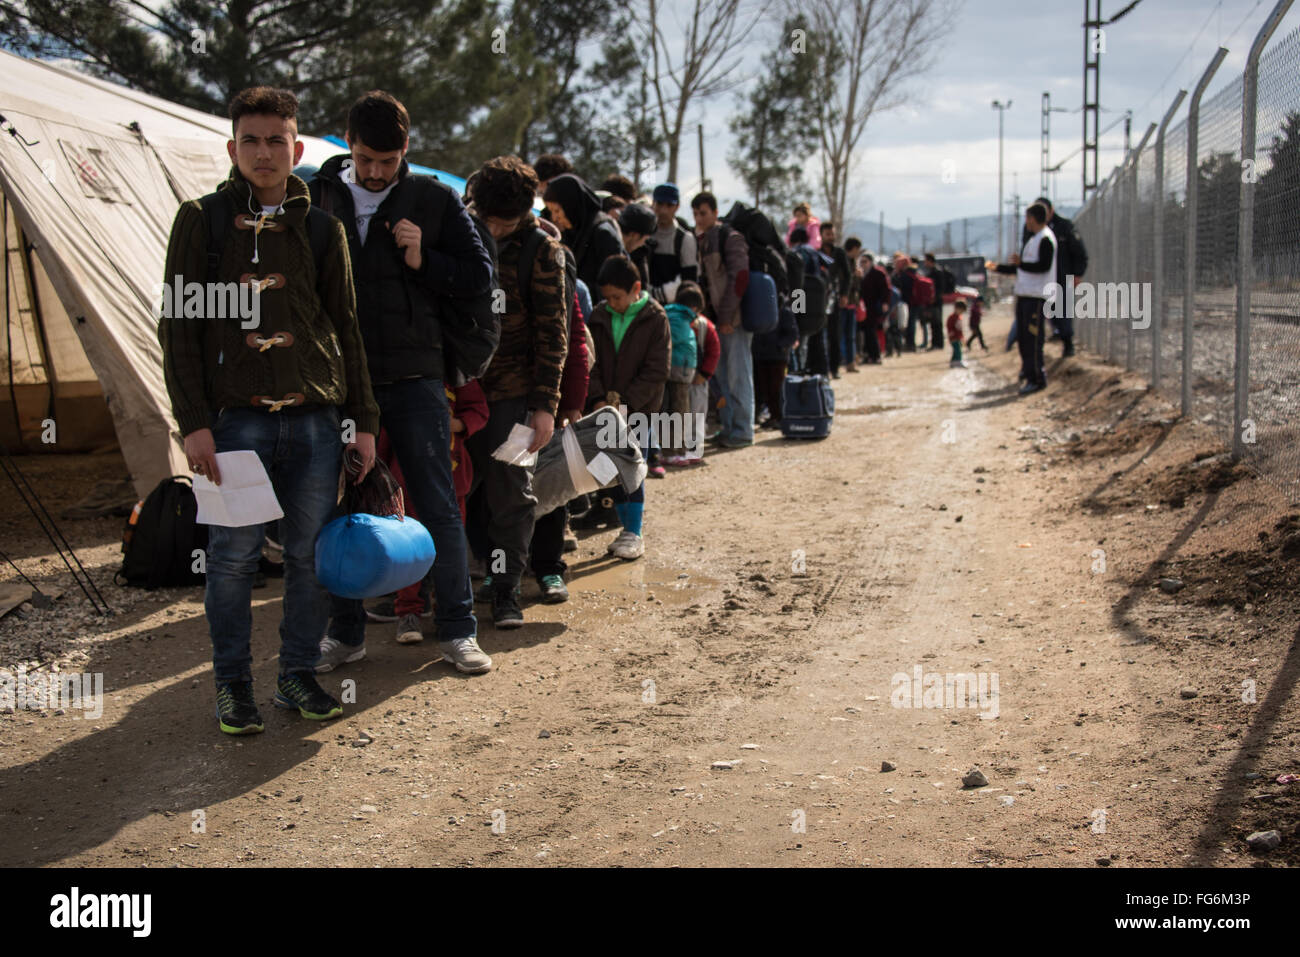 Asylum-seekers waiting in Idomeni Refugee camp to cross the Macedonian border. - Stock Image